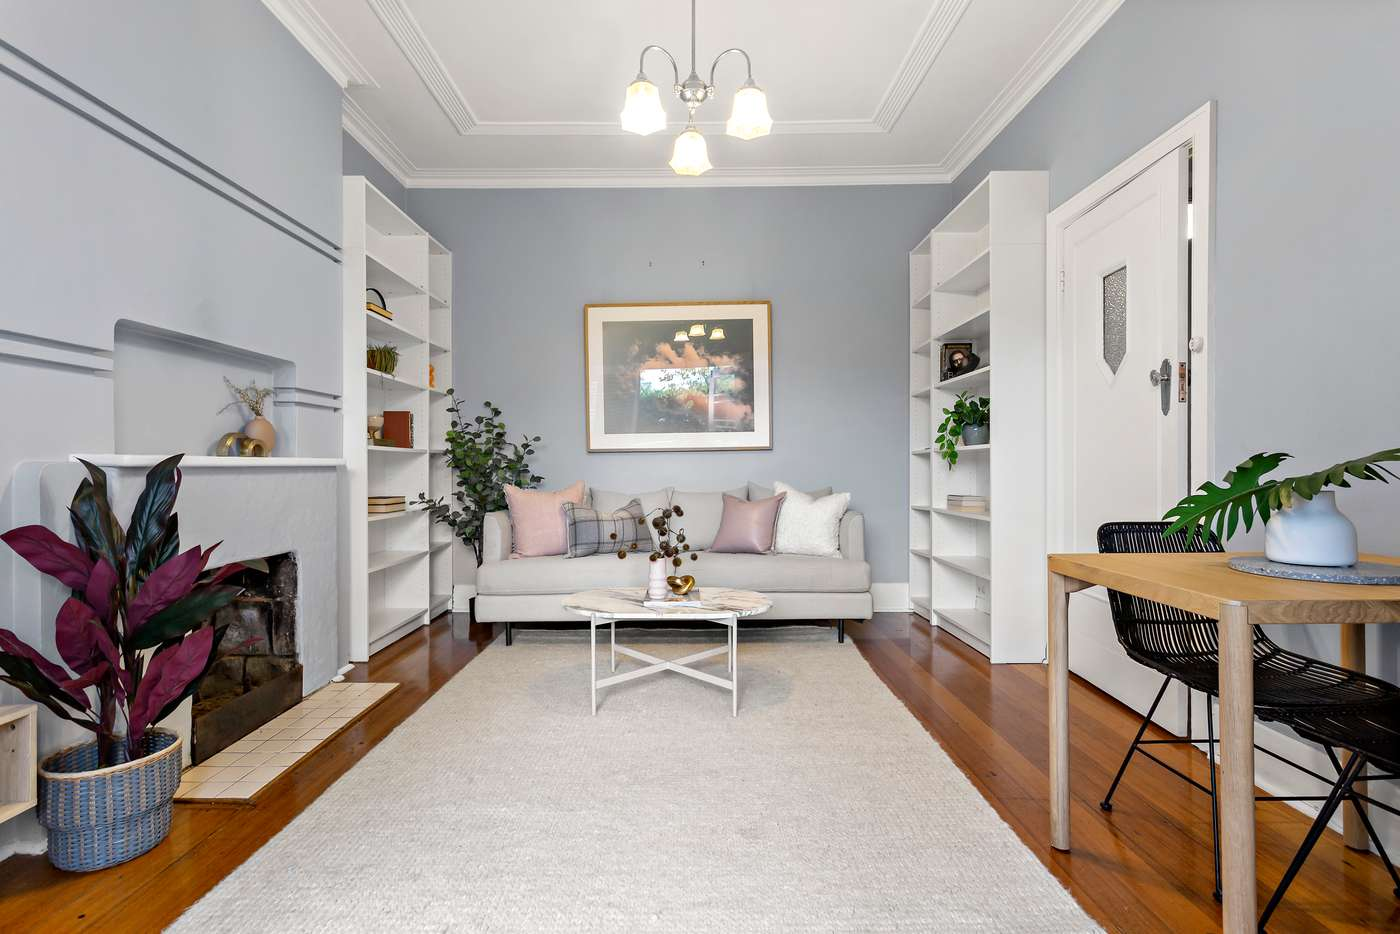 Main view of Homely apartment listing, 2/1 Greville Street, Prahran VIC 3181